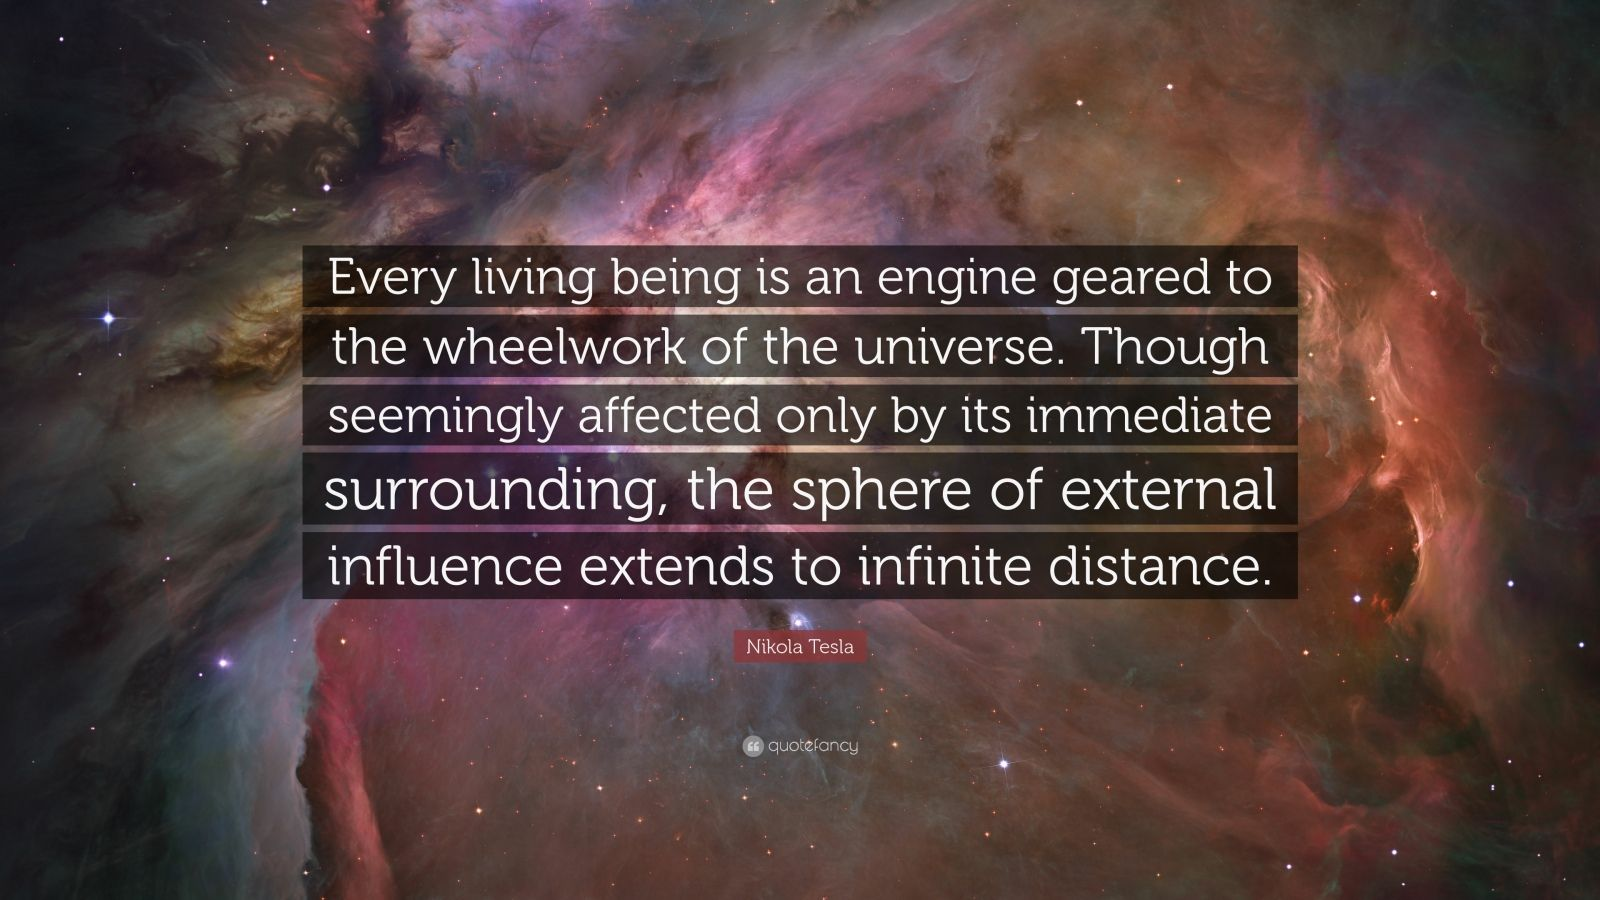 Nikola tesla quote every living being is an engine geared to the